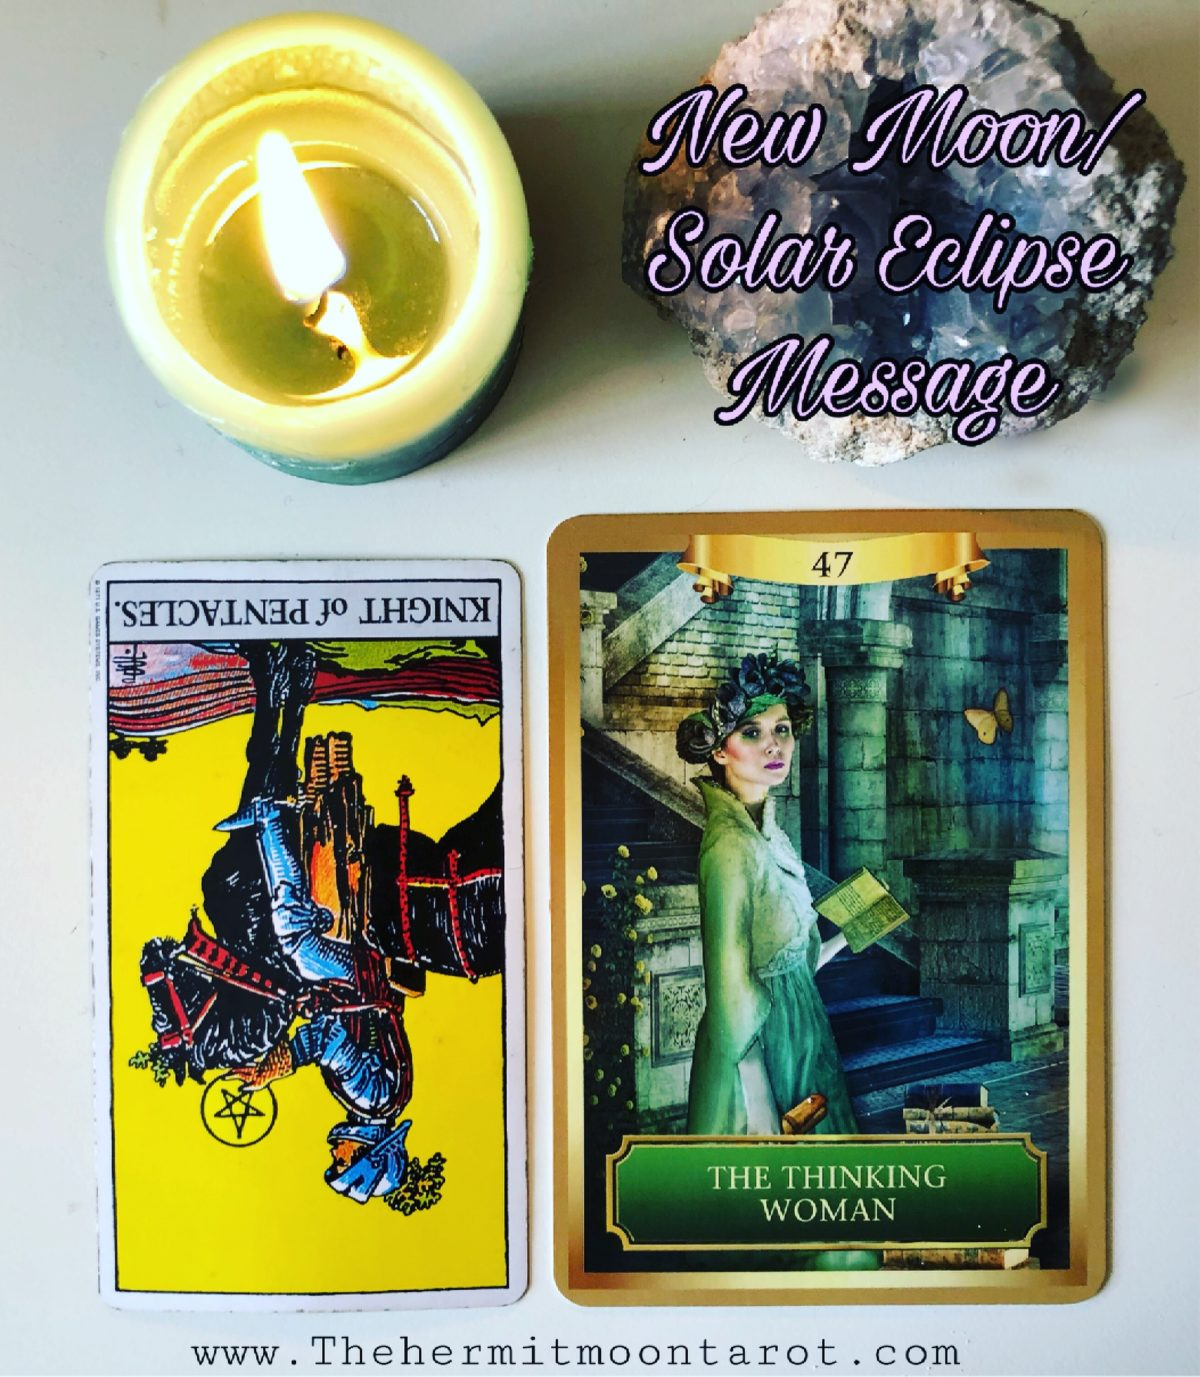 A message for New Moon/Solar Eclipse January 2019